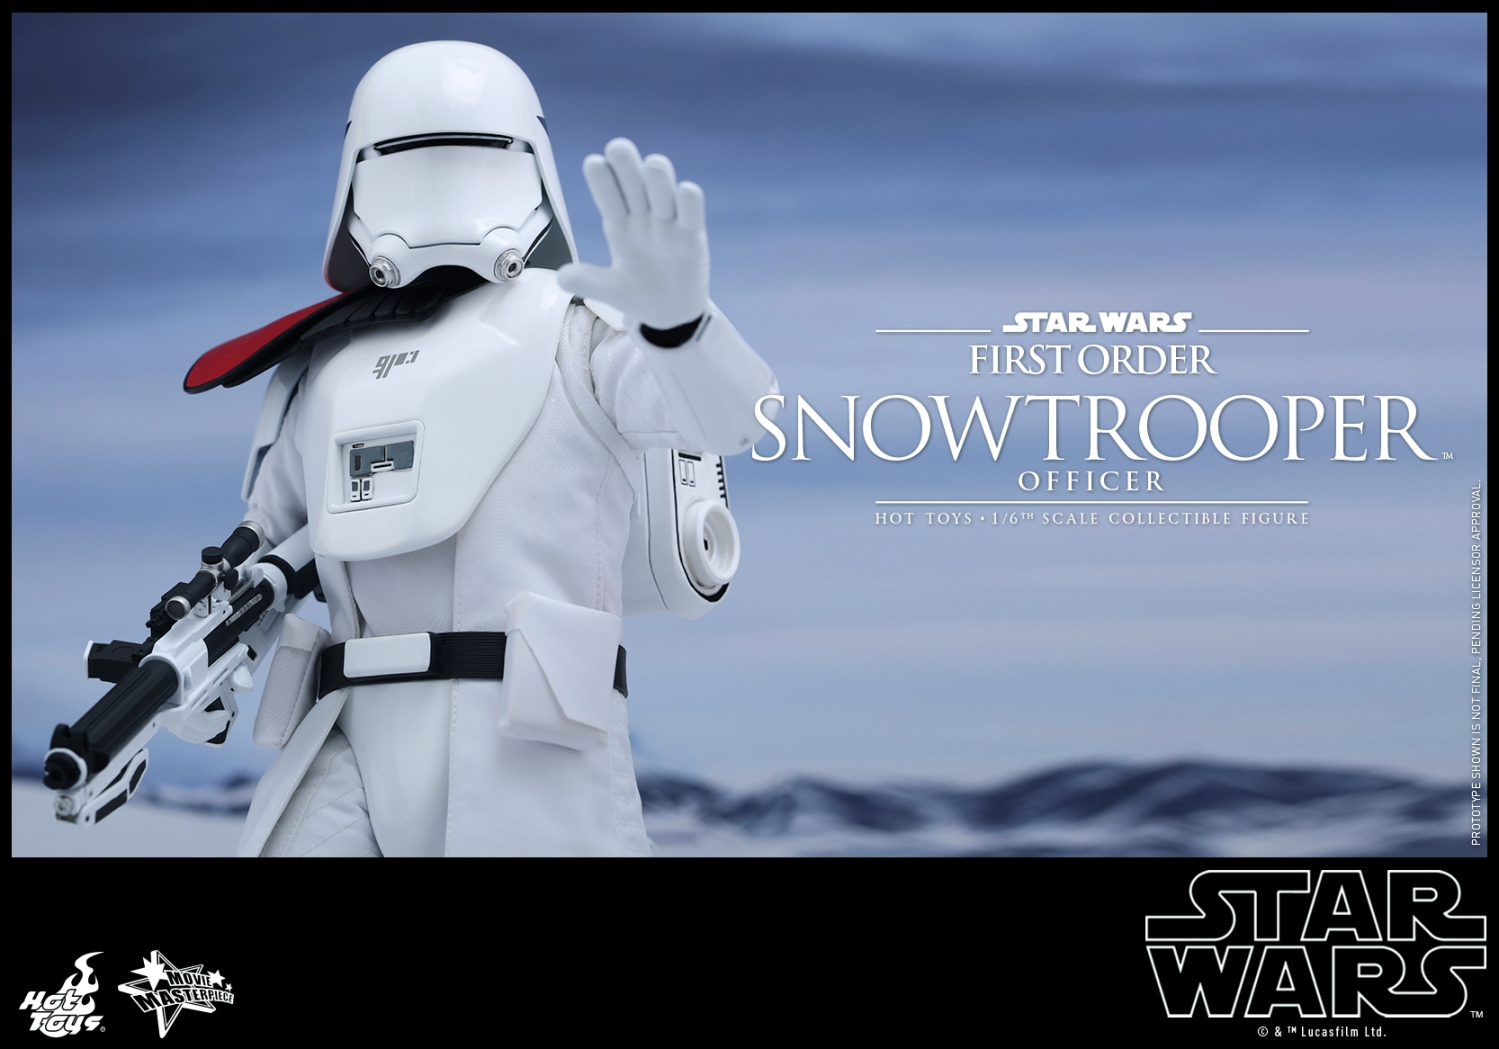 Hot Toys - Star Wars - The Force Awakens - The First Order Snowtrooper Officer Collectible Figure_PR9